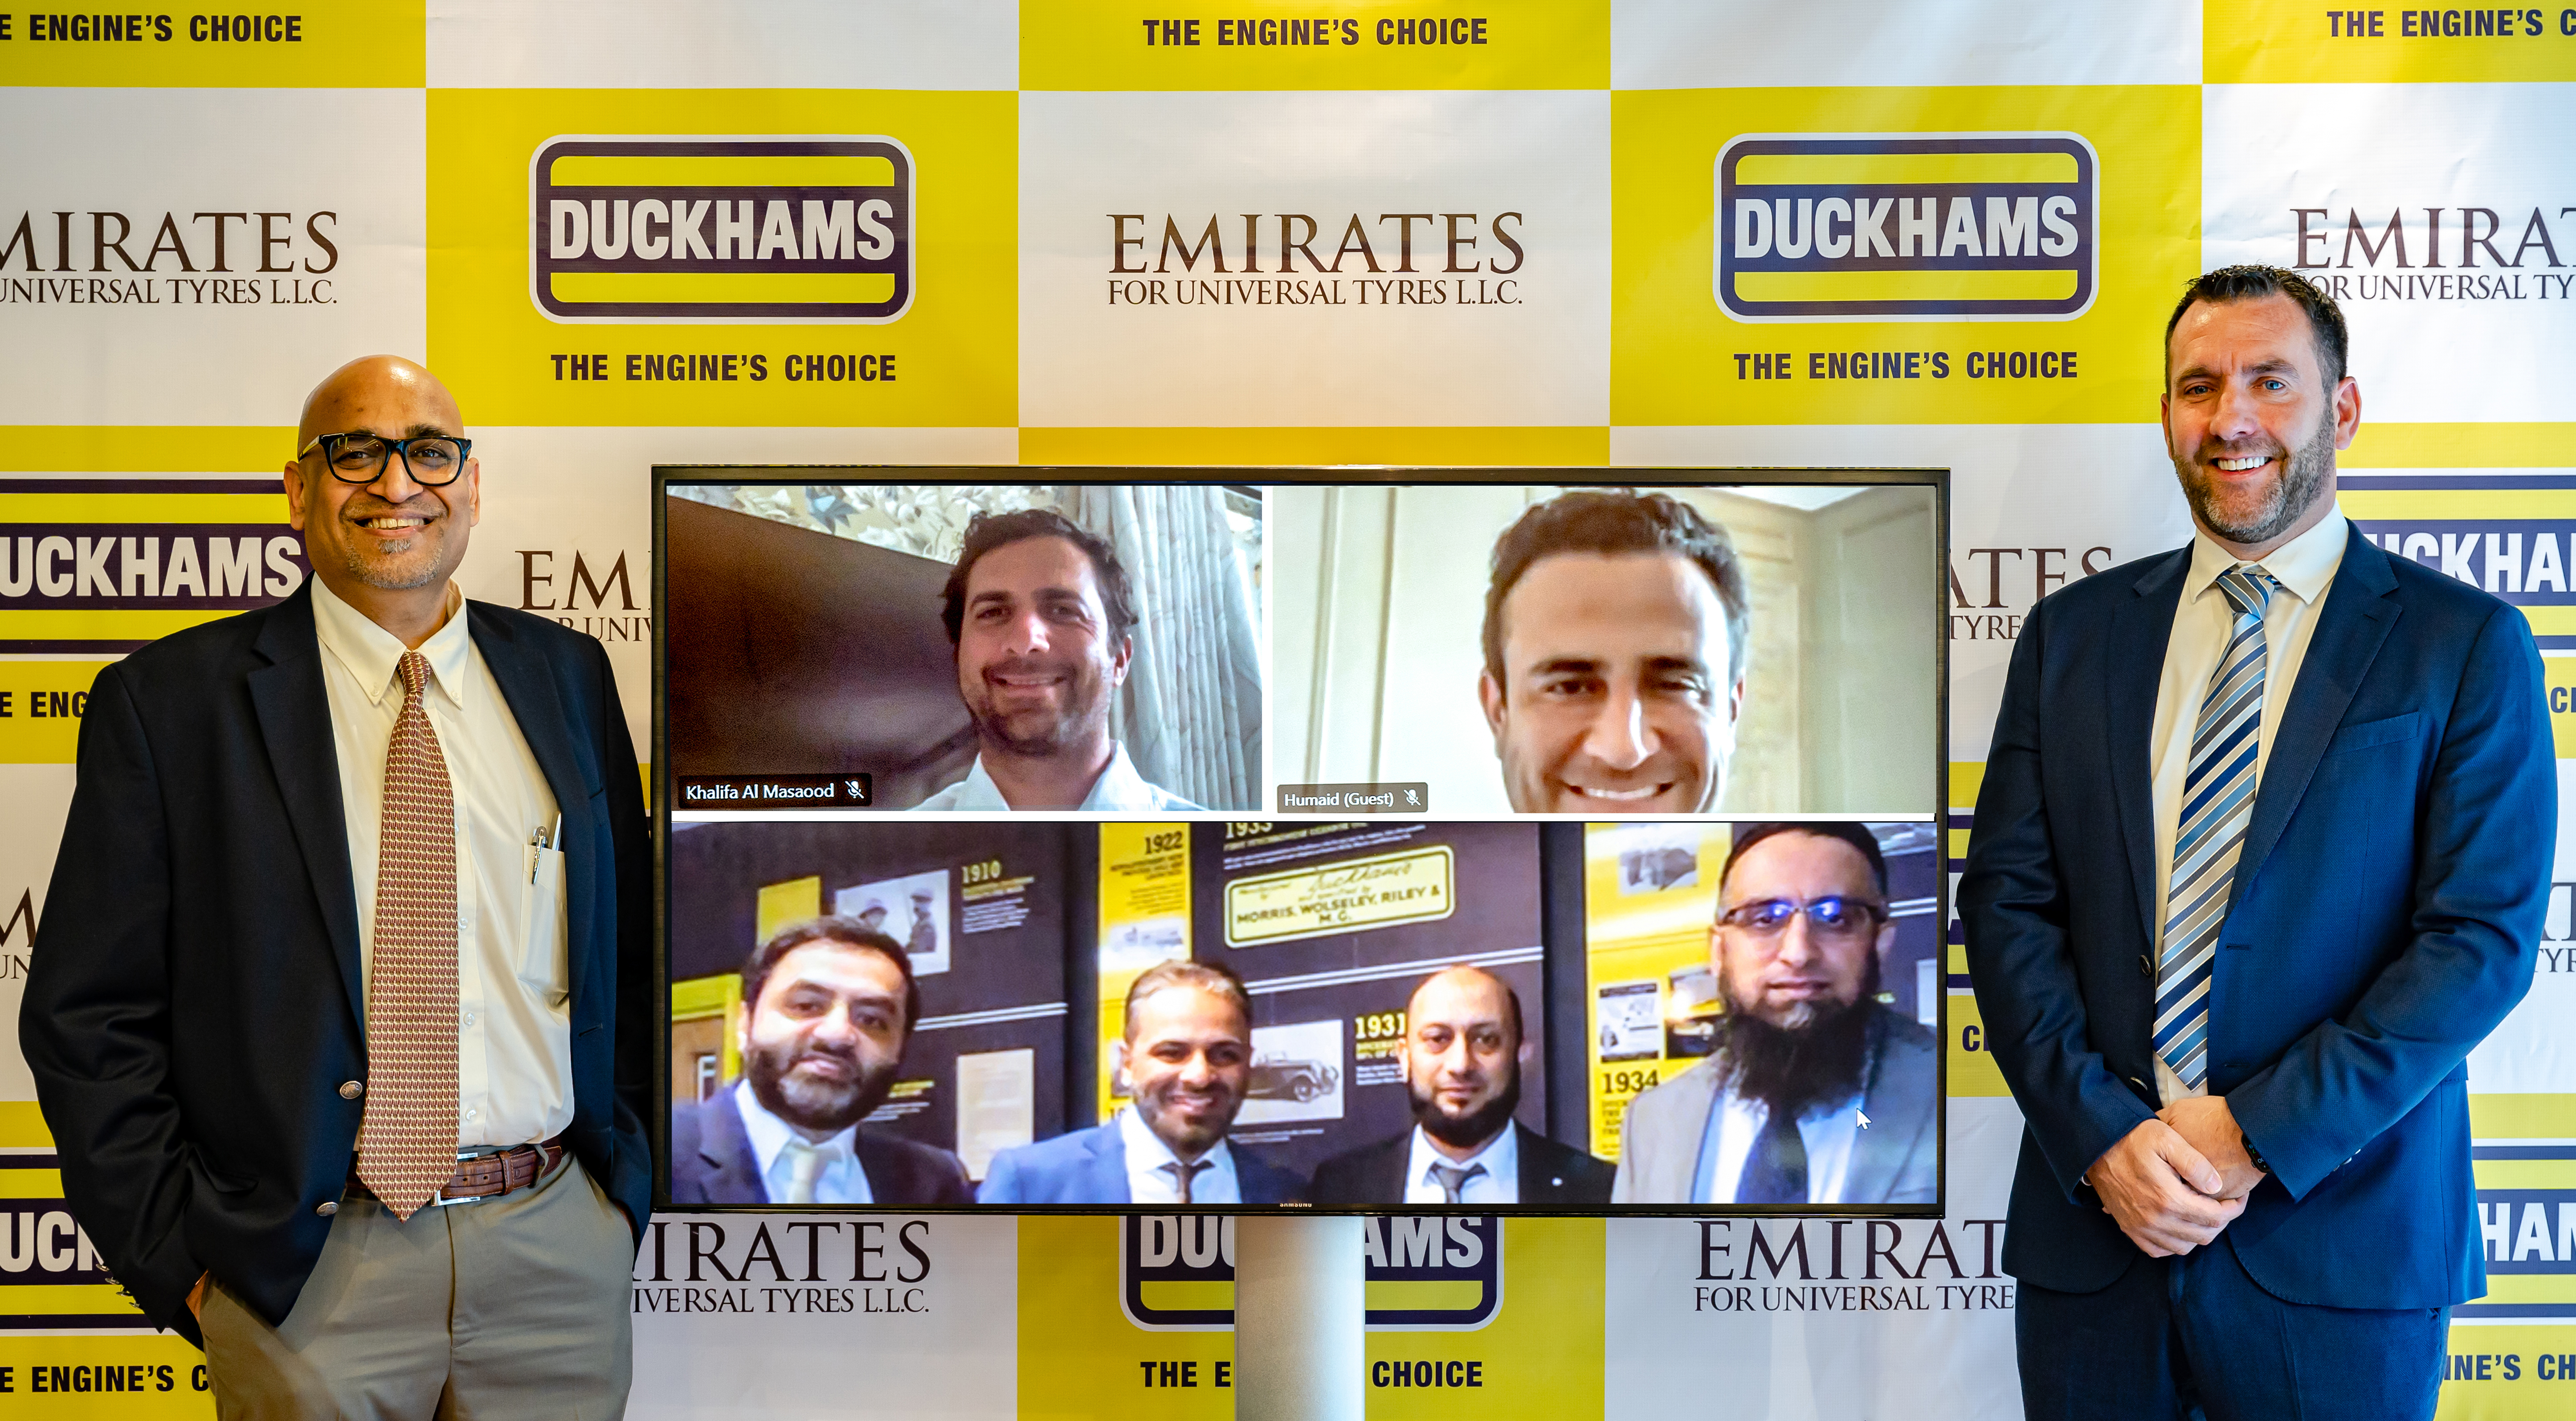 Duckhams, the Iconic BritishLubricant Brand since 1899, launches in the UAE